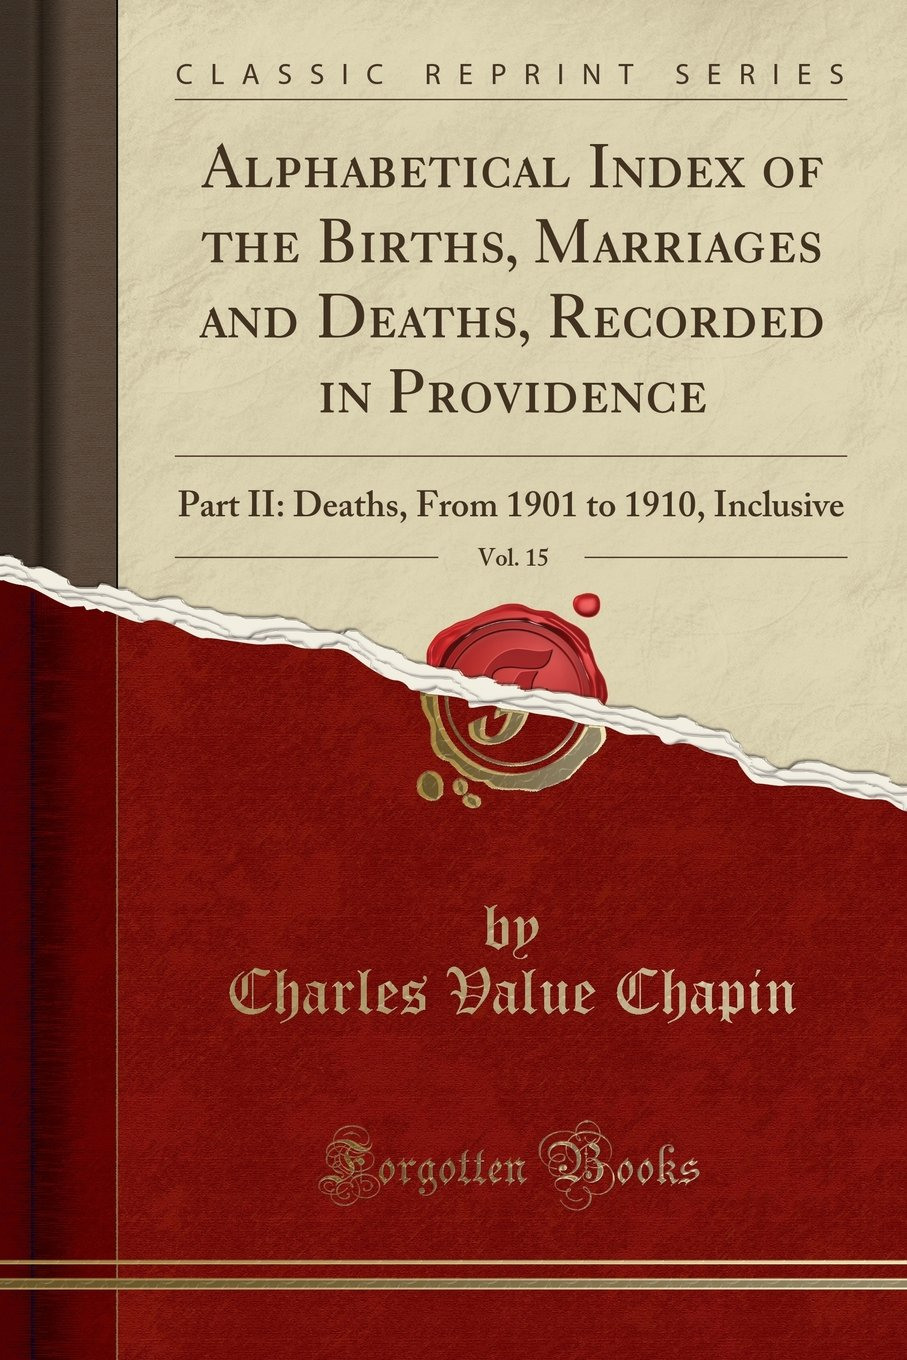 Download Alphabetical Index of the Births, Marriages and Deaths, Recorded in Providence, Vol. 15: Part II: Deaths, From 1901 to 1910, Inclusive (Classic Reprint) pdf